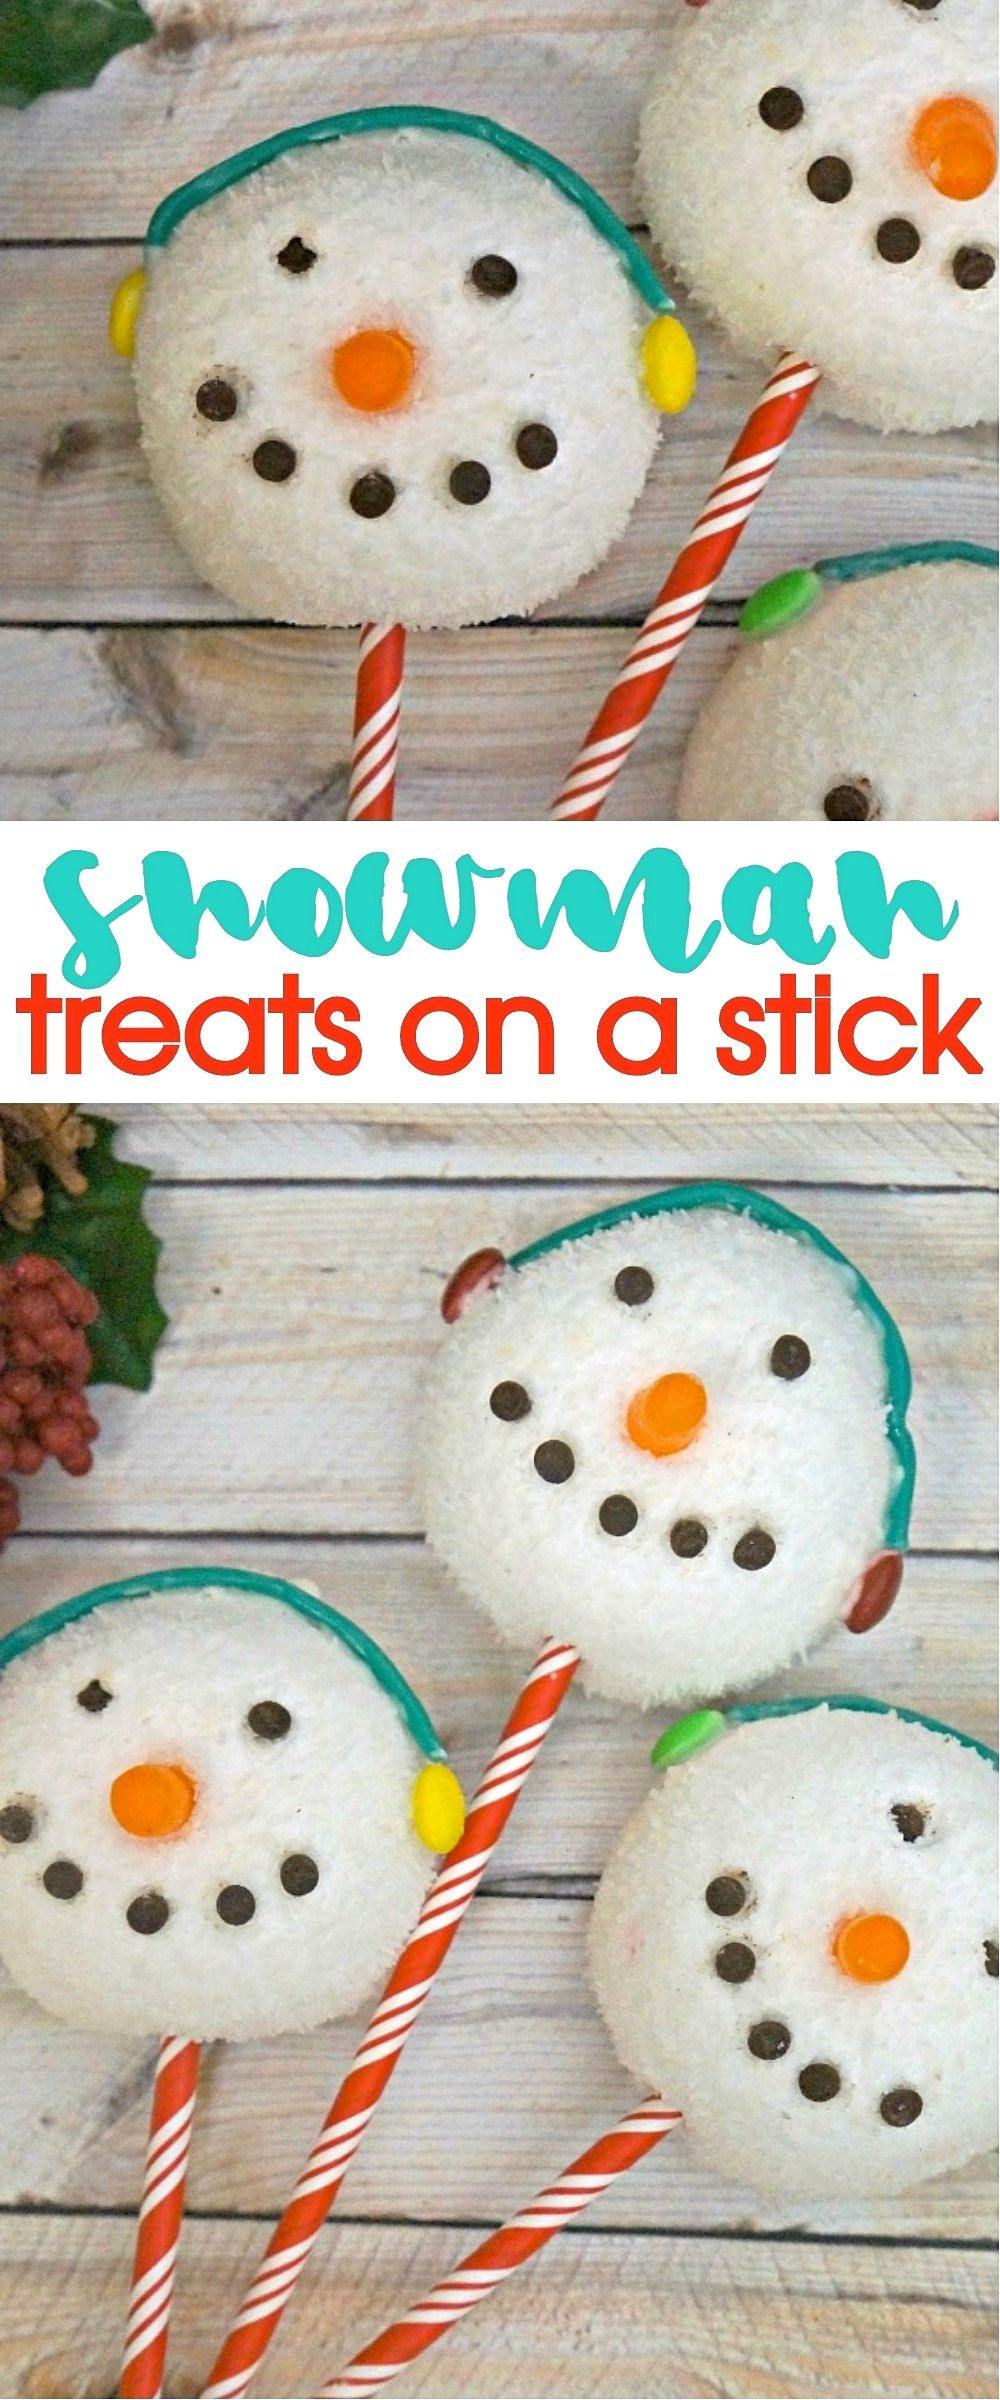 Winter Holiday Treats for kids- Make These DIY Snowman Treats On A Stick